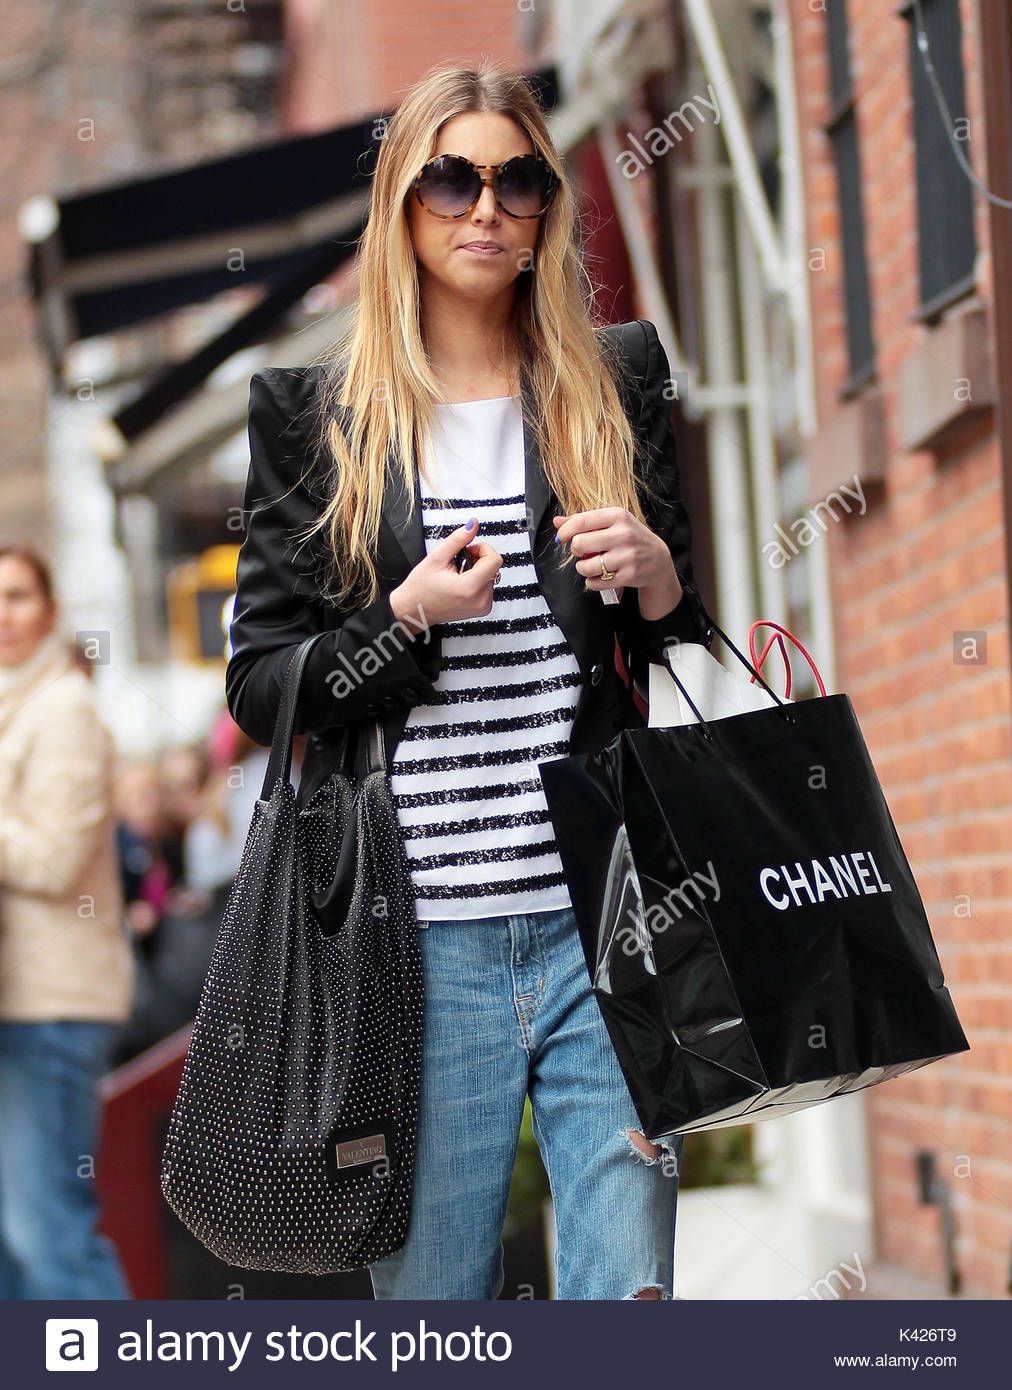 91e26a5d4cd7 Whitney Port. Whitney Port carries a Valentino bag on one arm and a big  black Chanel bag on the other while out and about in NYC.